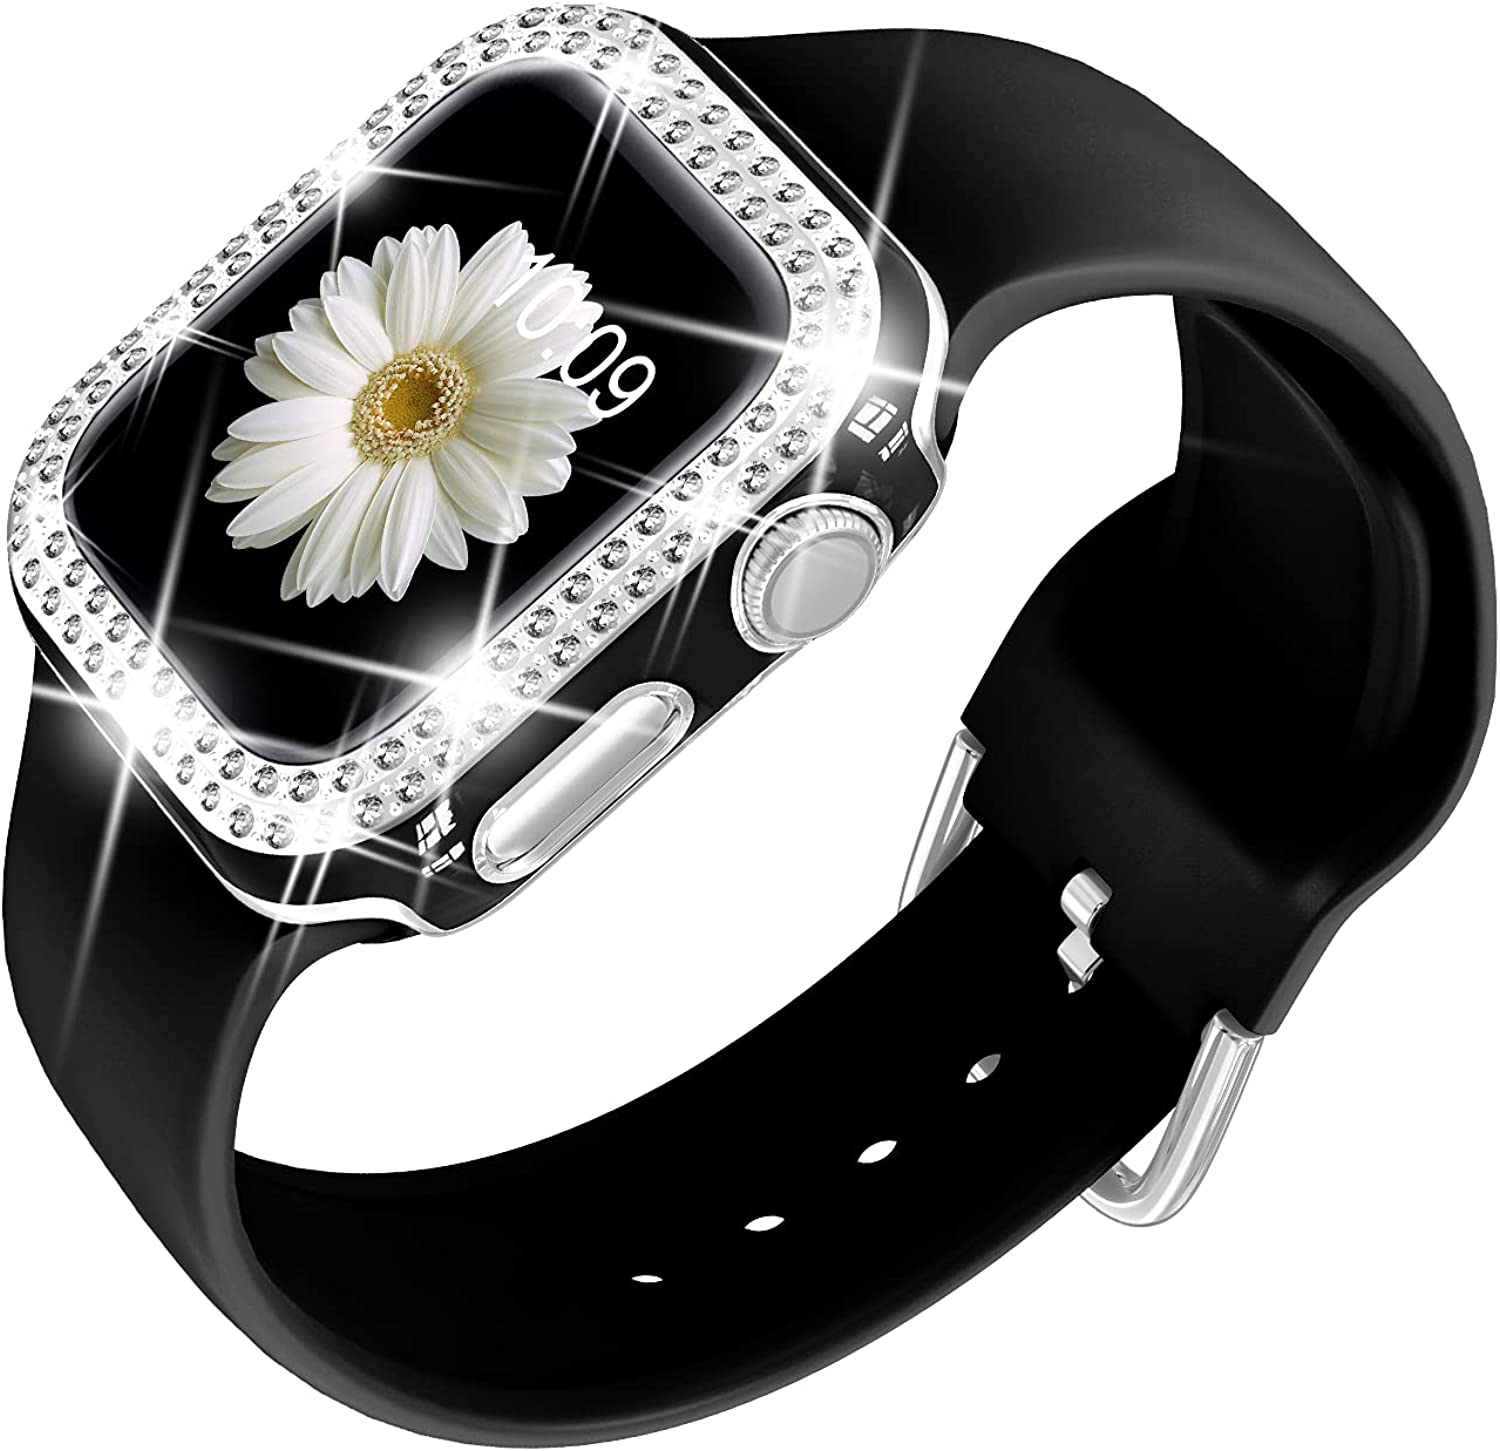 DABAOZA Compatible for Apple Watch Band with Bumper Glitter Case, Women Silicone Soft Comfortable Adjustable Strap with Silver Buckle for iWatch Series